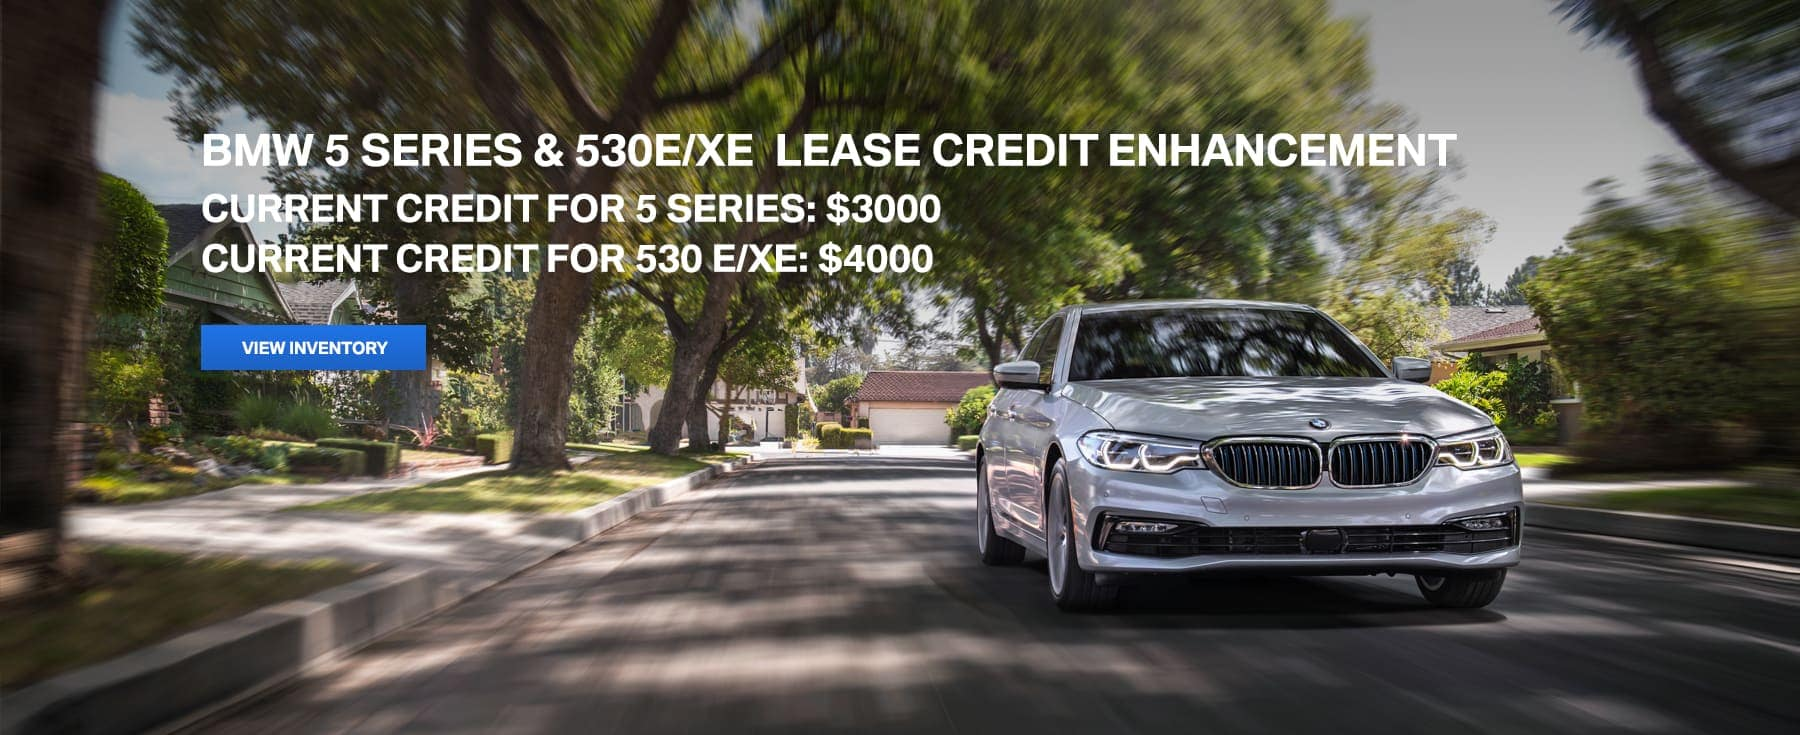 5 Series & 530E/XE Lease Credit Enhancement